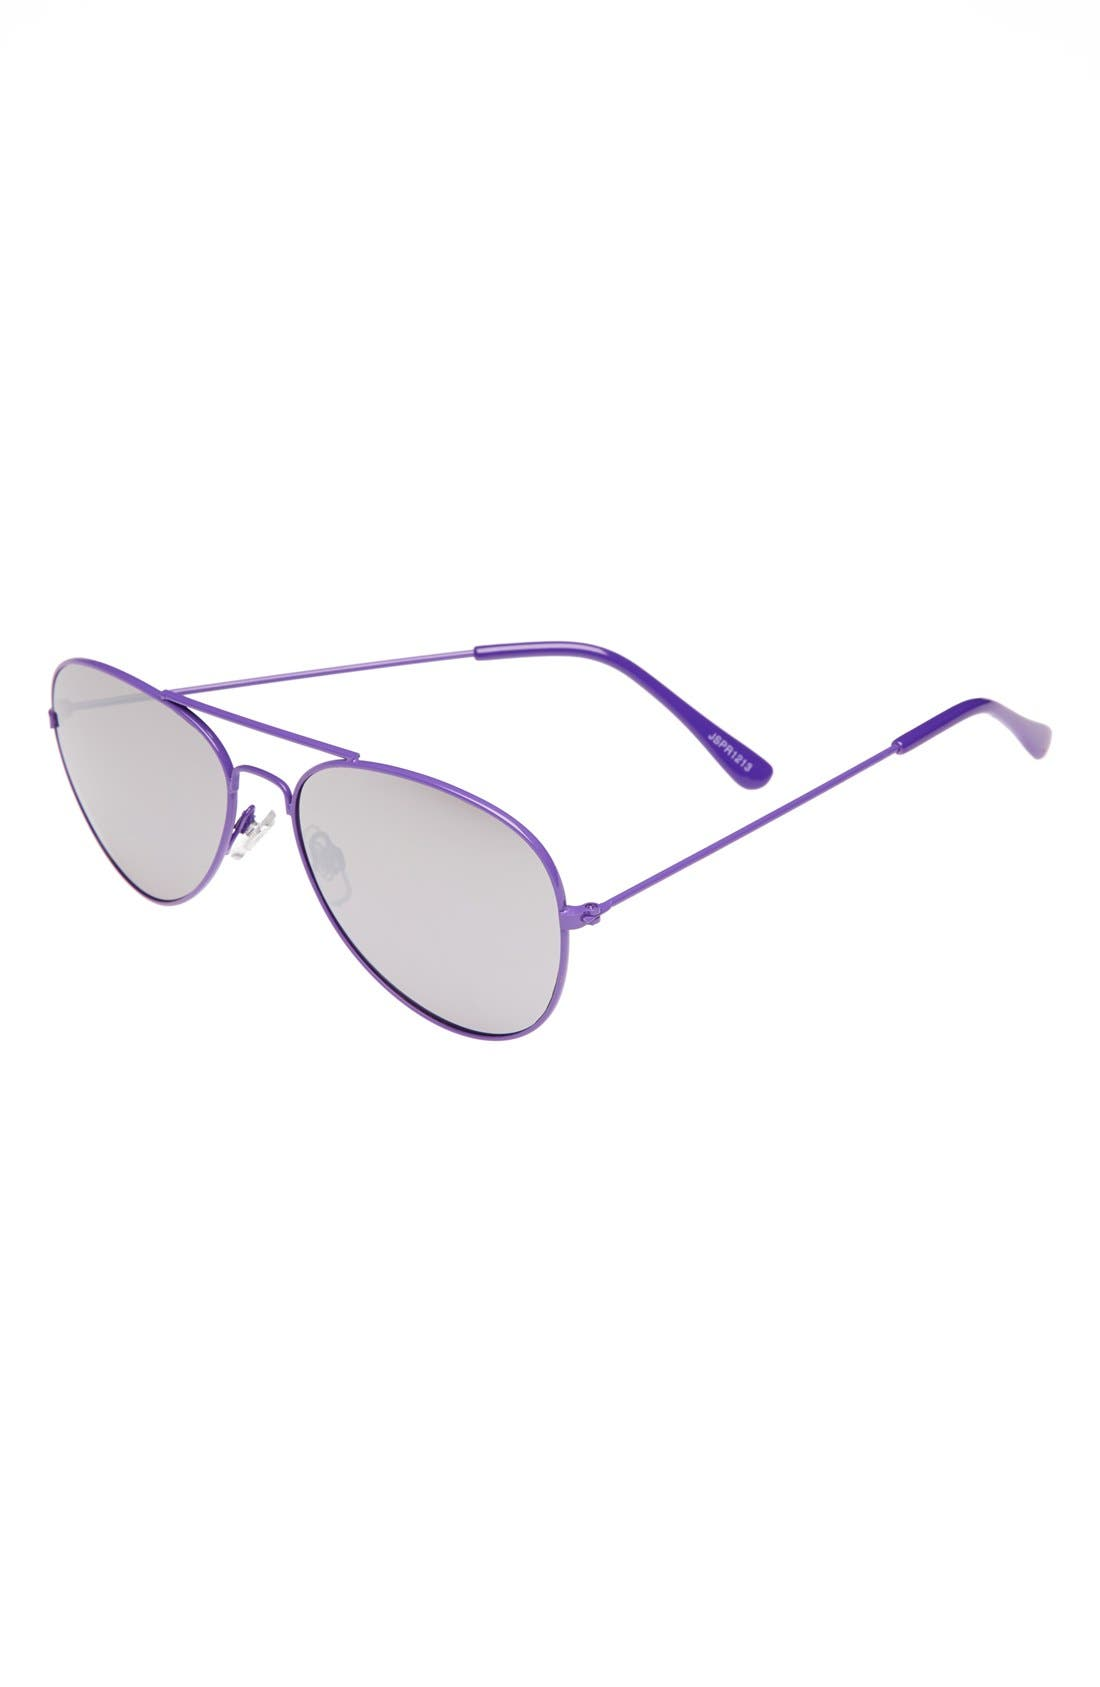 Main Image - Fantas Eyes 'Jetsetter' Aviator Sunglasses (Girls)